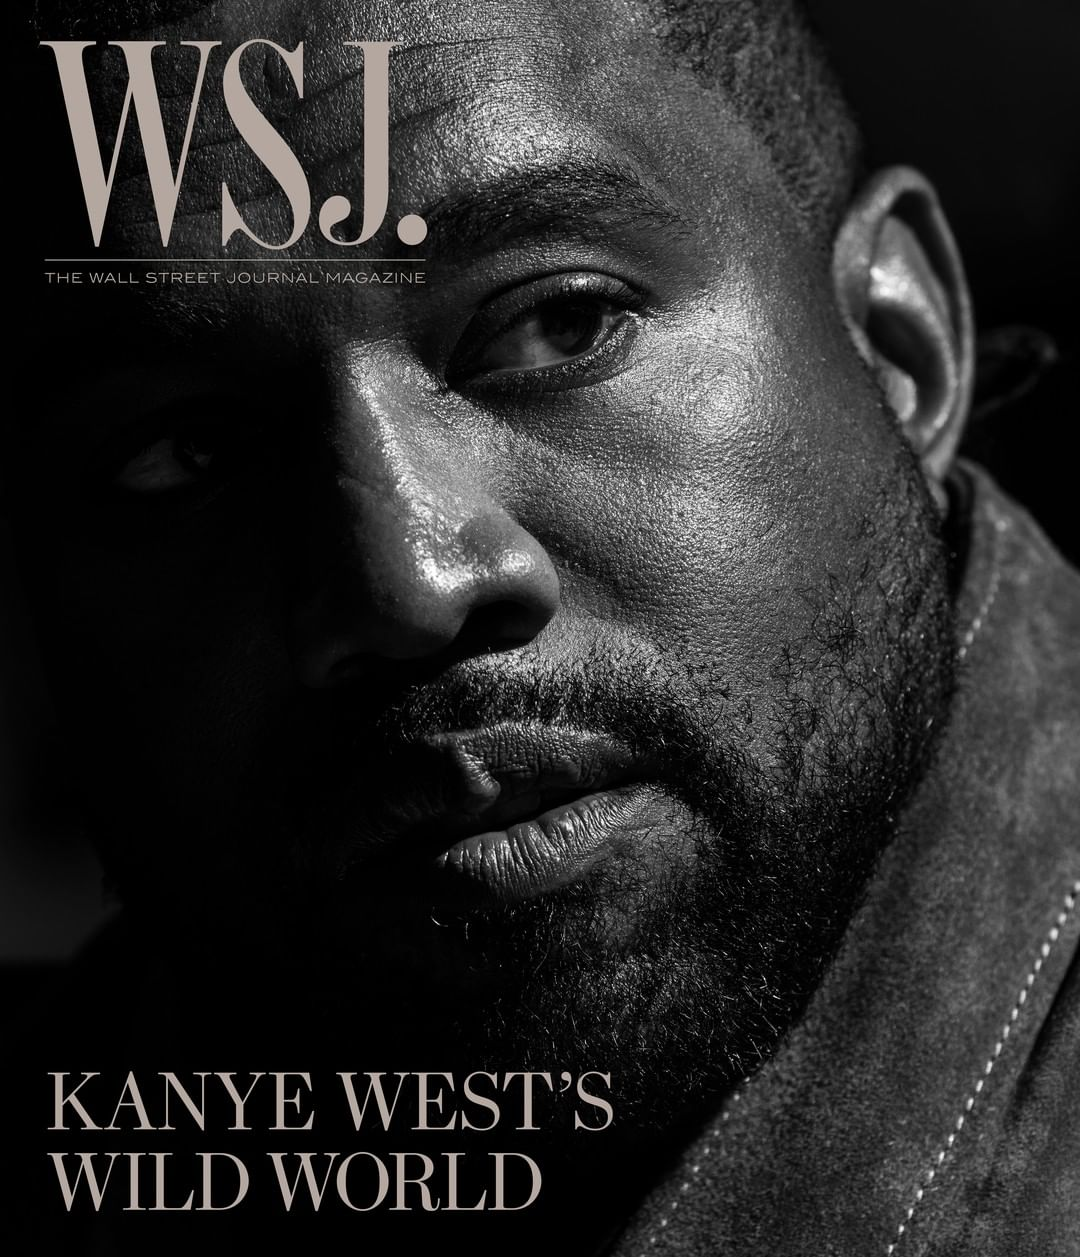 Your Look into Kanye West's Wild World in WSJ Magazine's Latest Issue